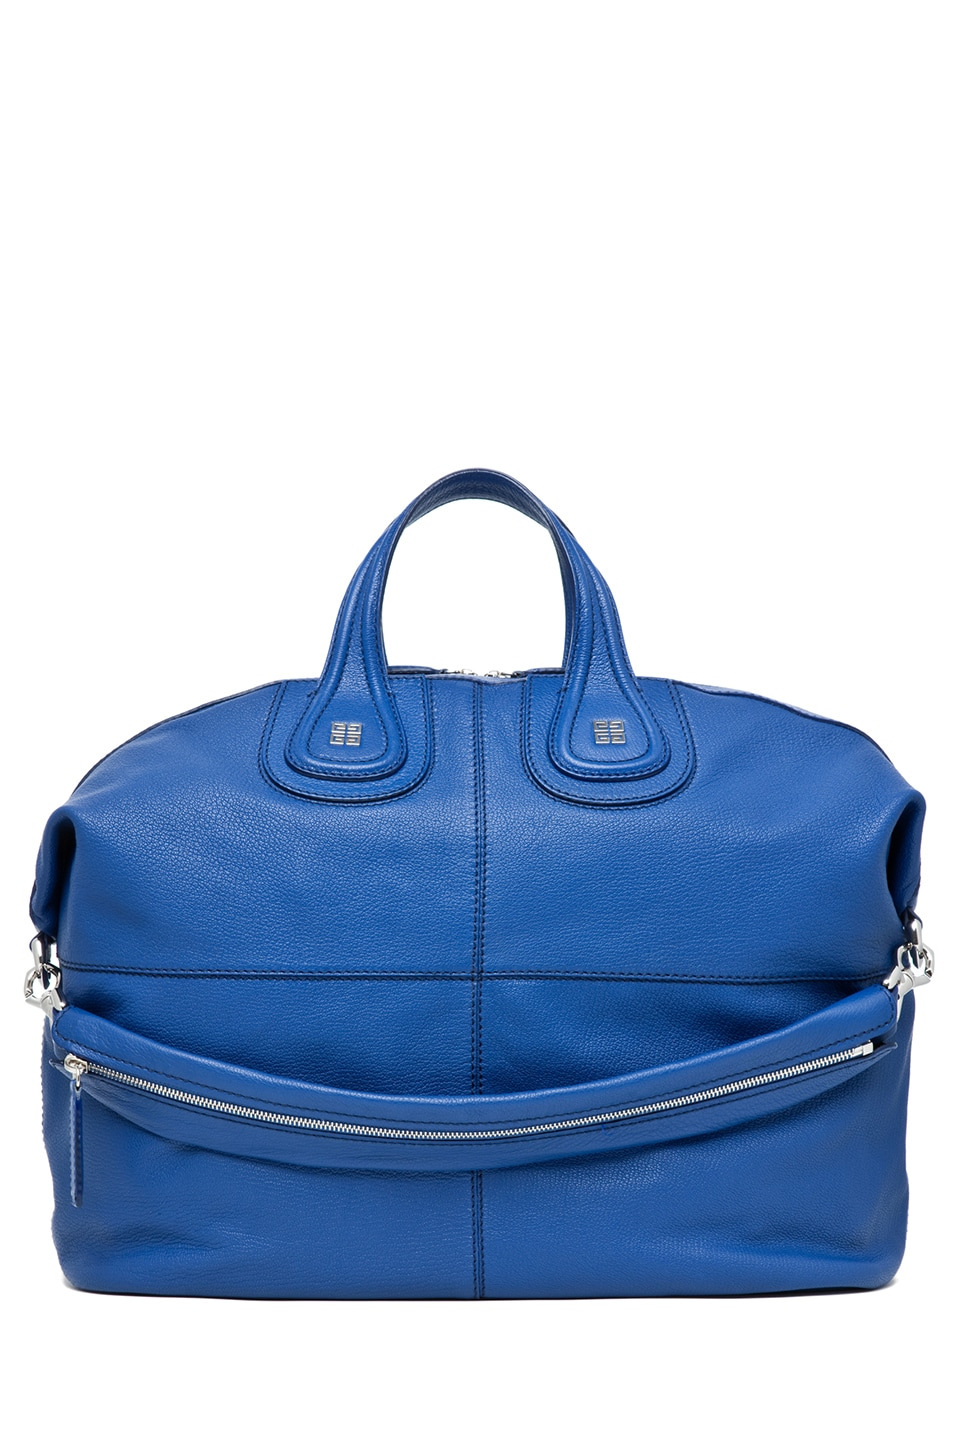 Image 1 of GIVENCHY Nightingale Large in Moroccan Blue